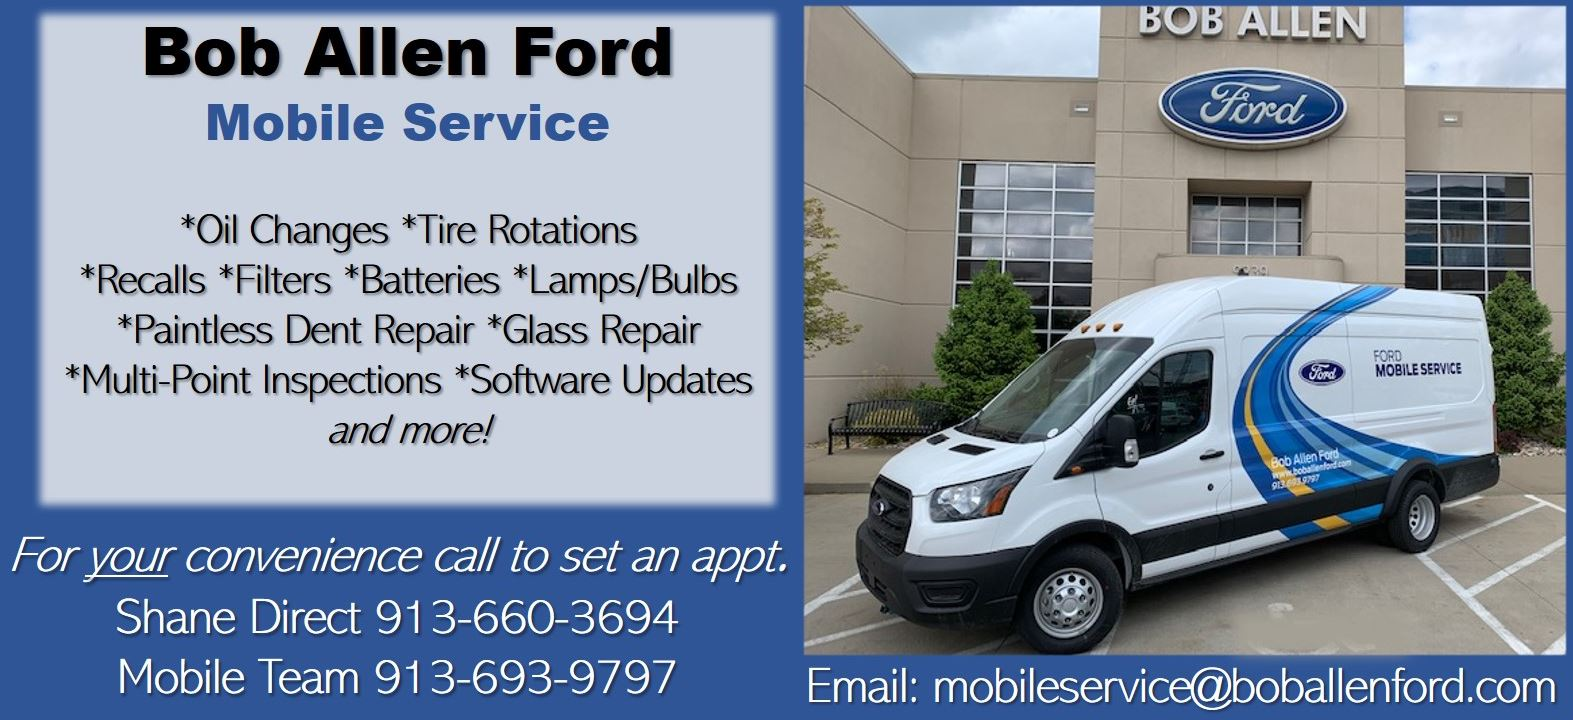 Bob Allen Ford Mobile Service Team Information